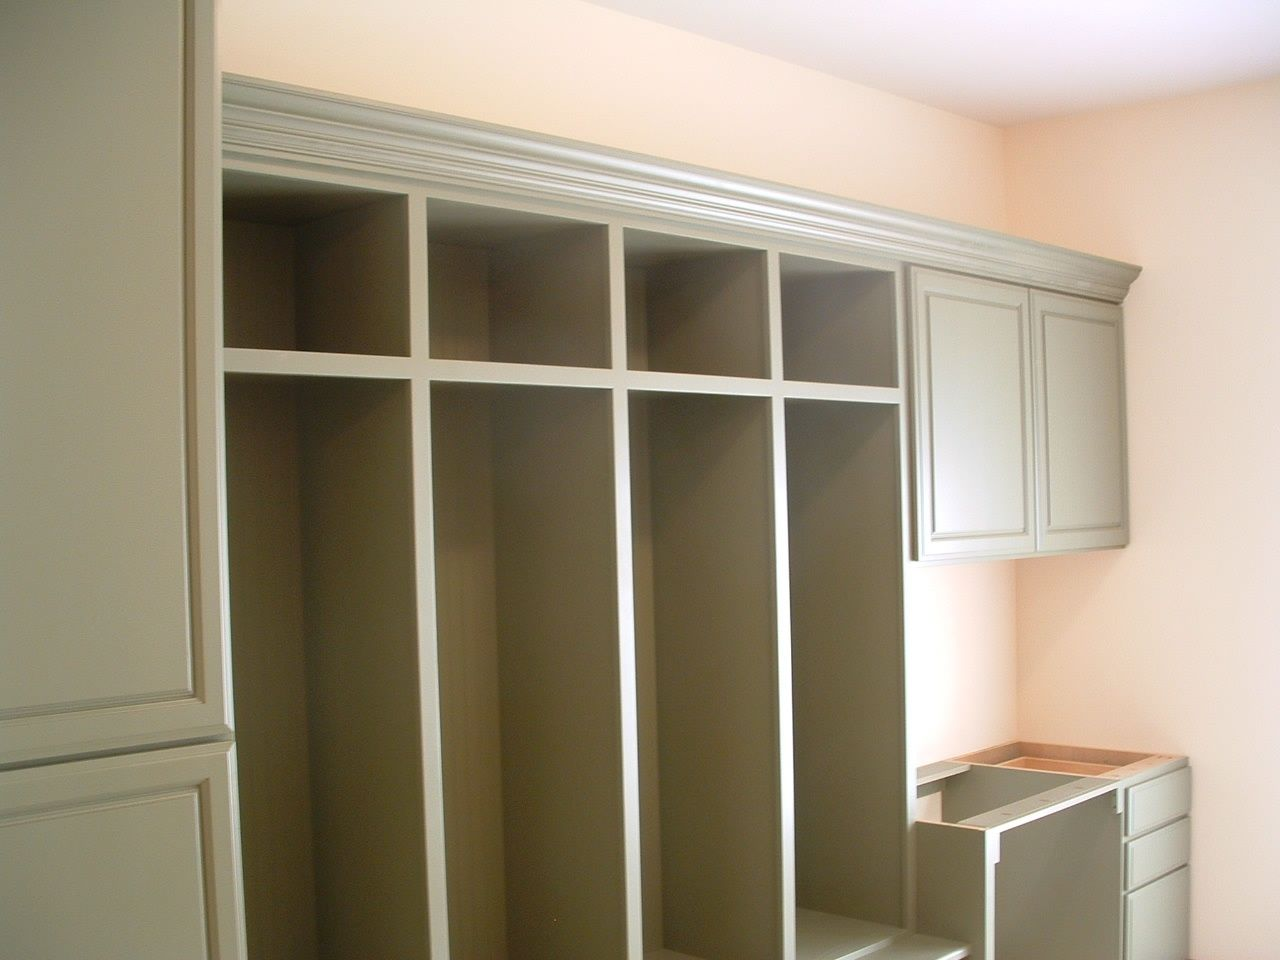 custom cubby laundry room cabinet by peabody enterprises inc custom made cubby laundry room cabinet